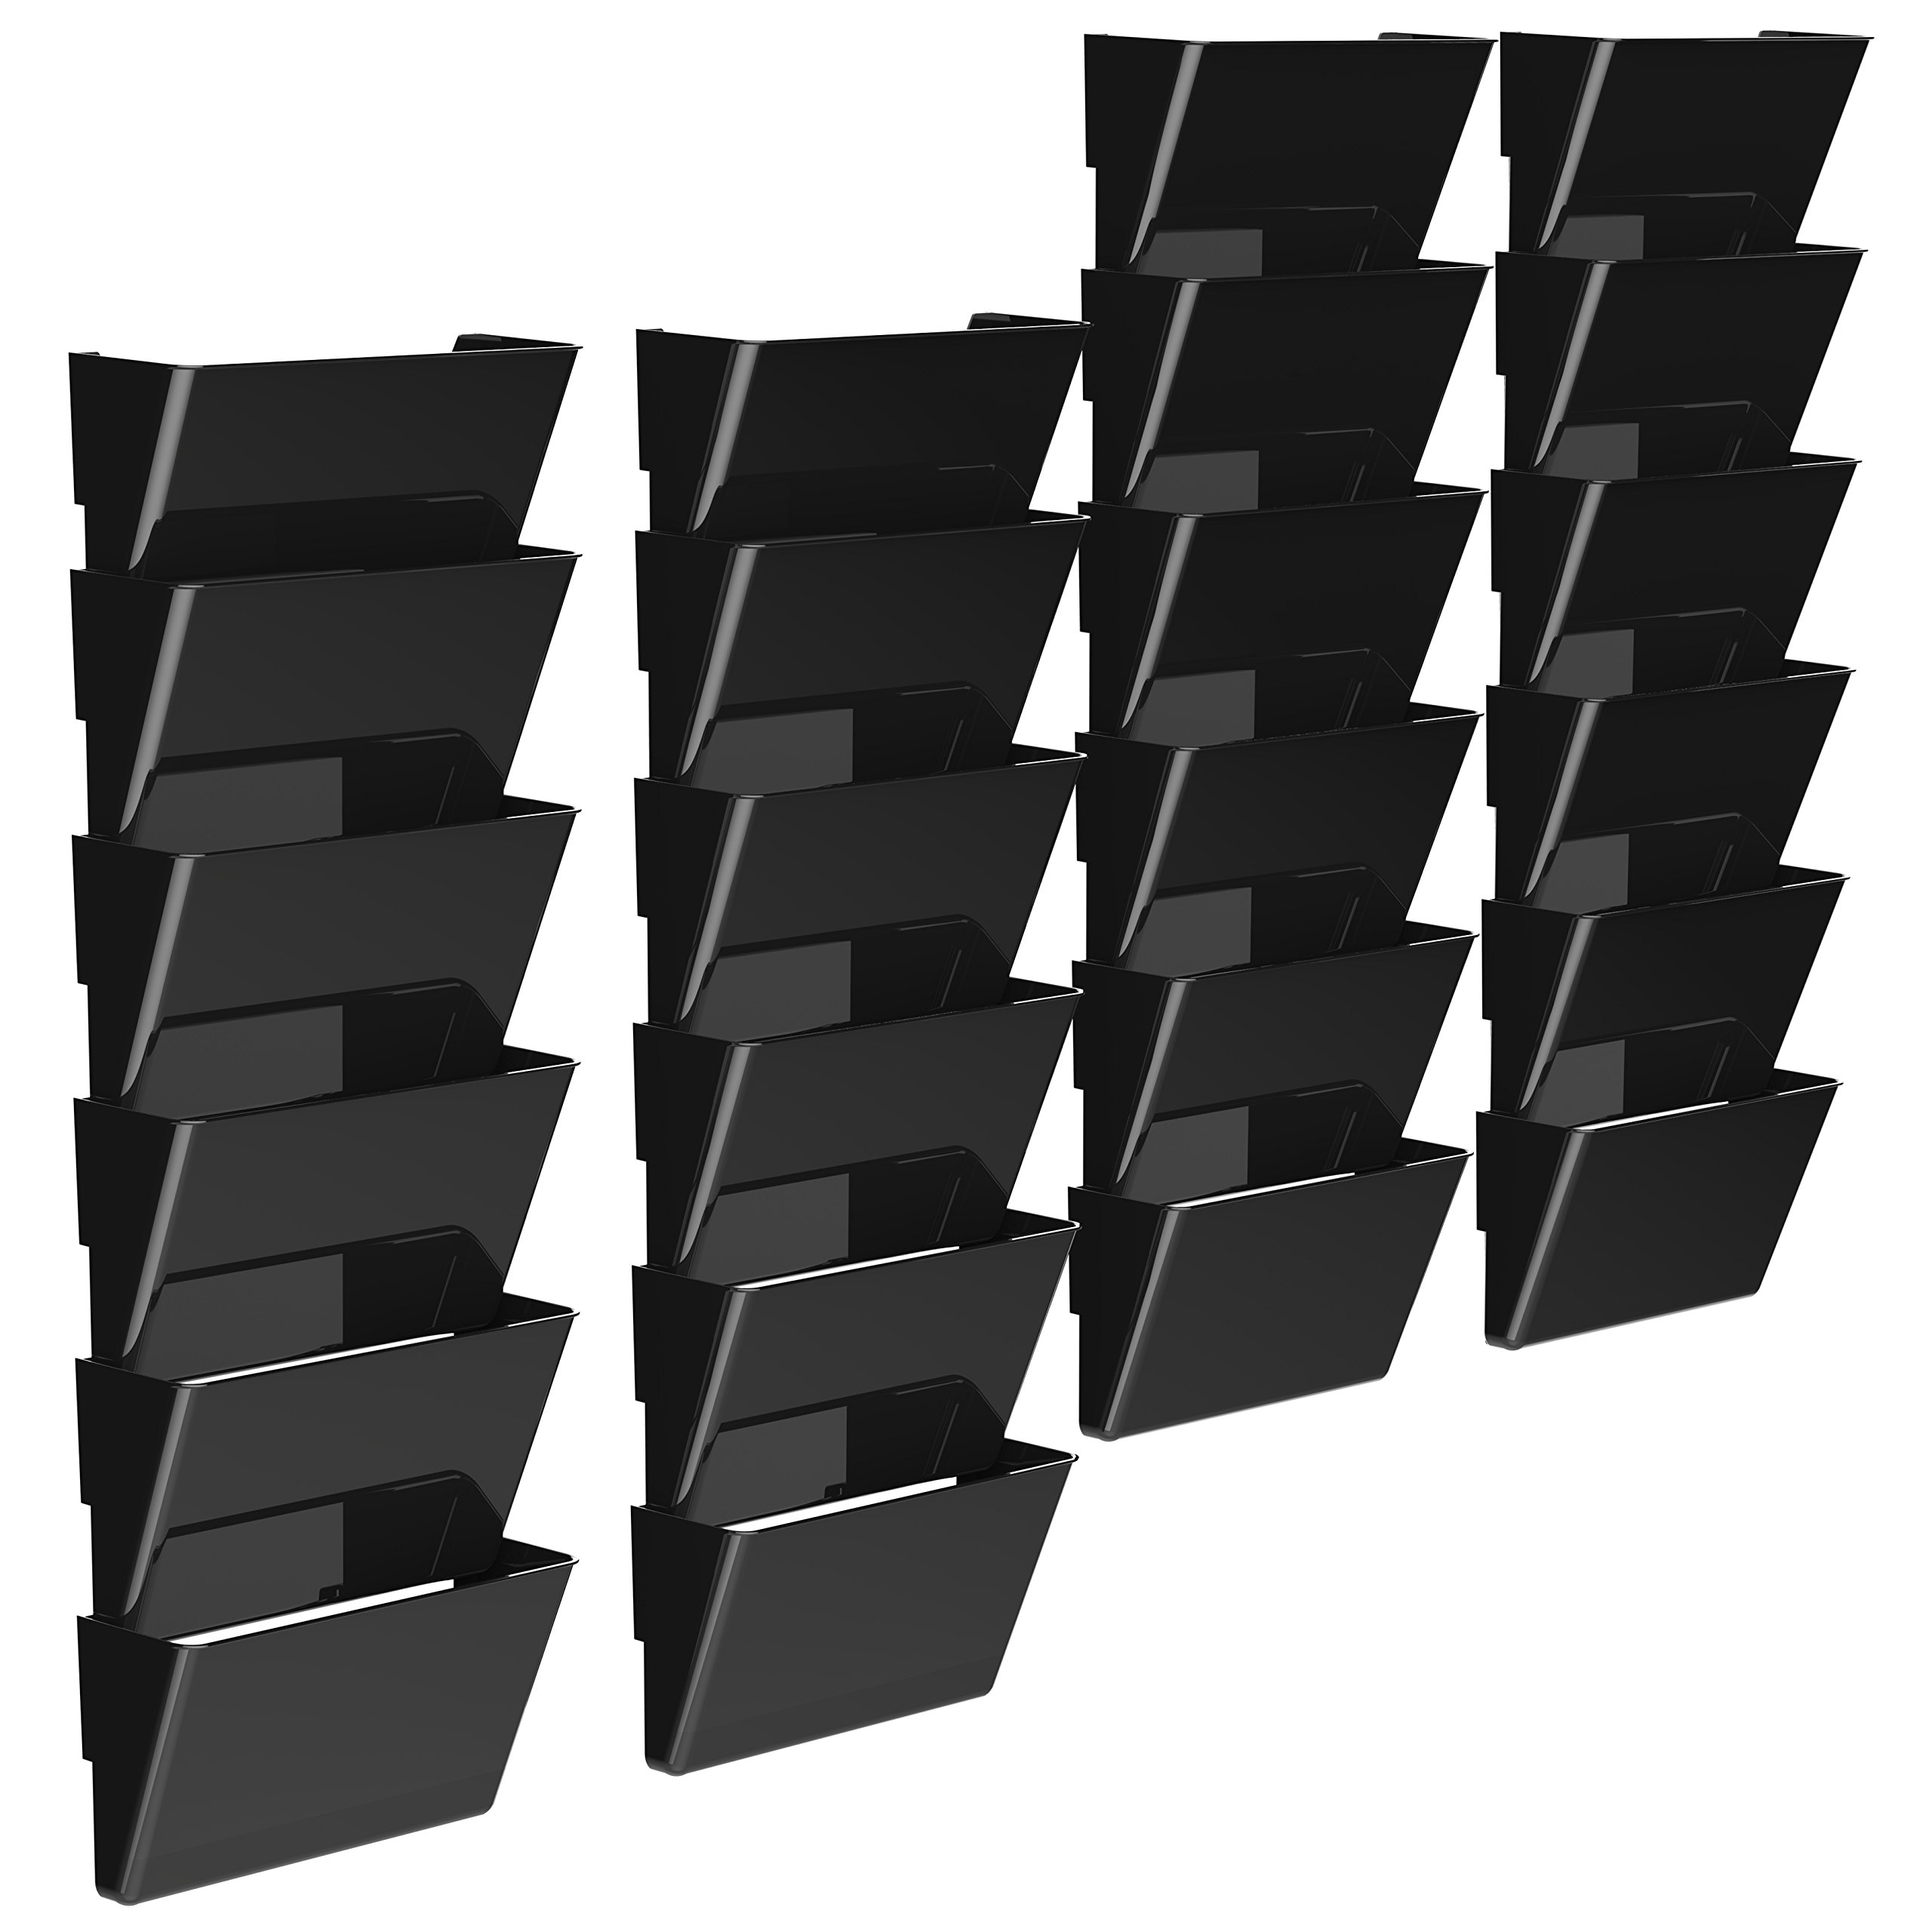 Storex Recycled Wall Files, 13 x 7 x 4 Inches Each, Letter, Black, Case of 4 6-Packs (70216B04C) by Storex